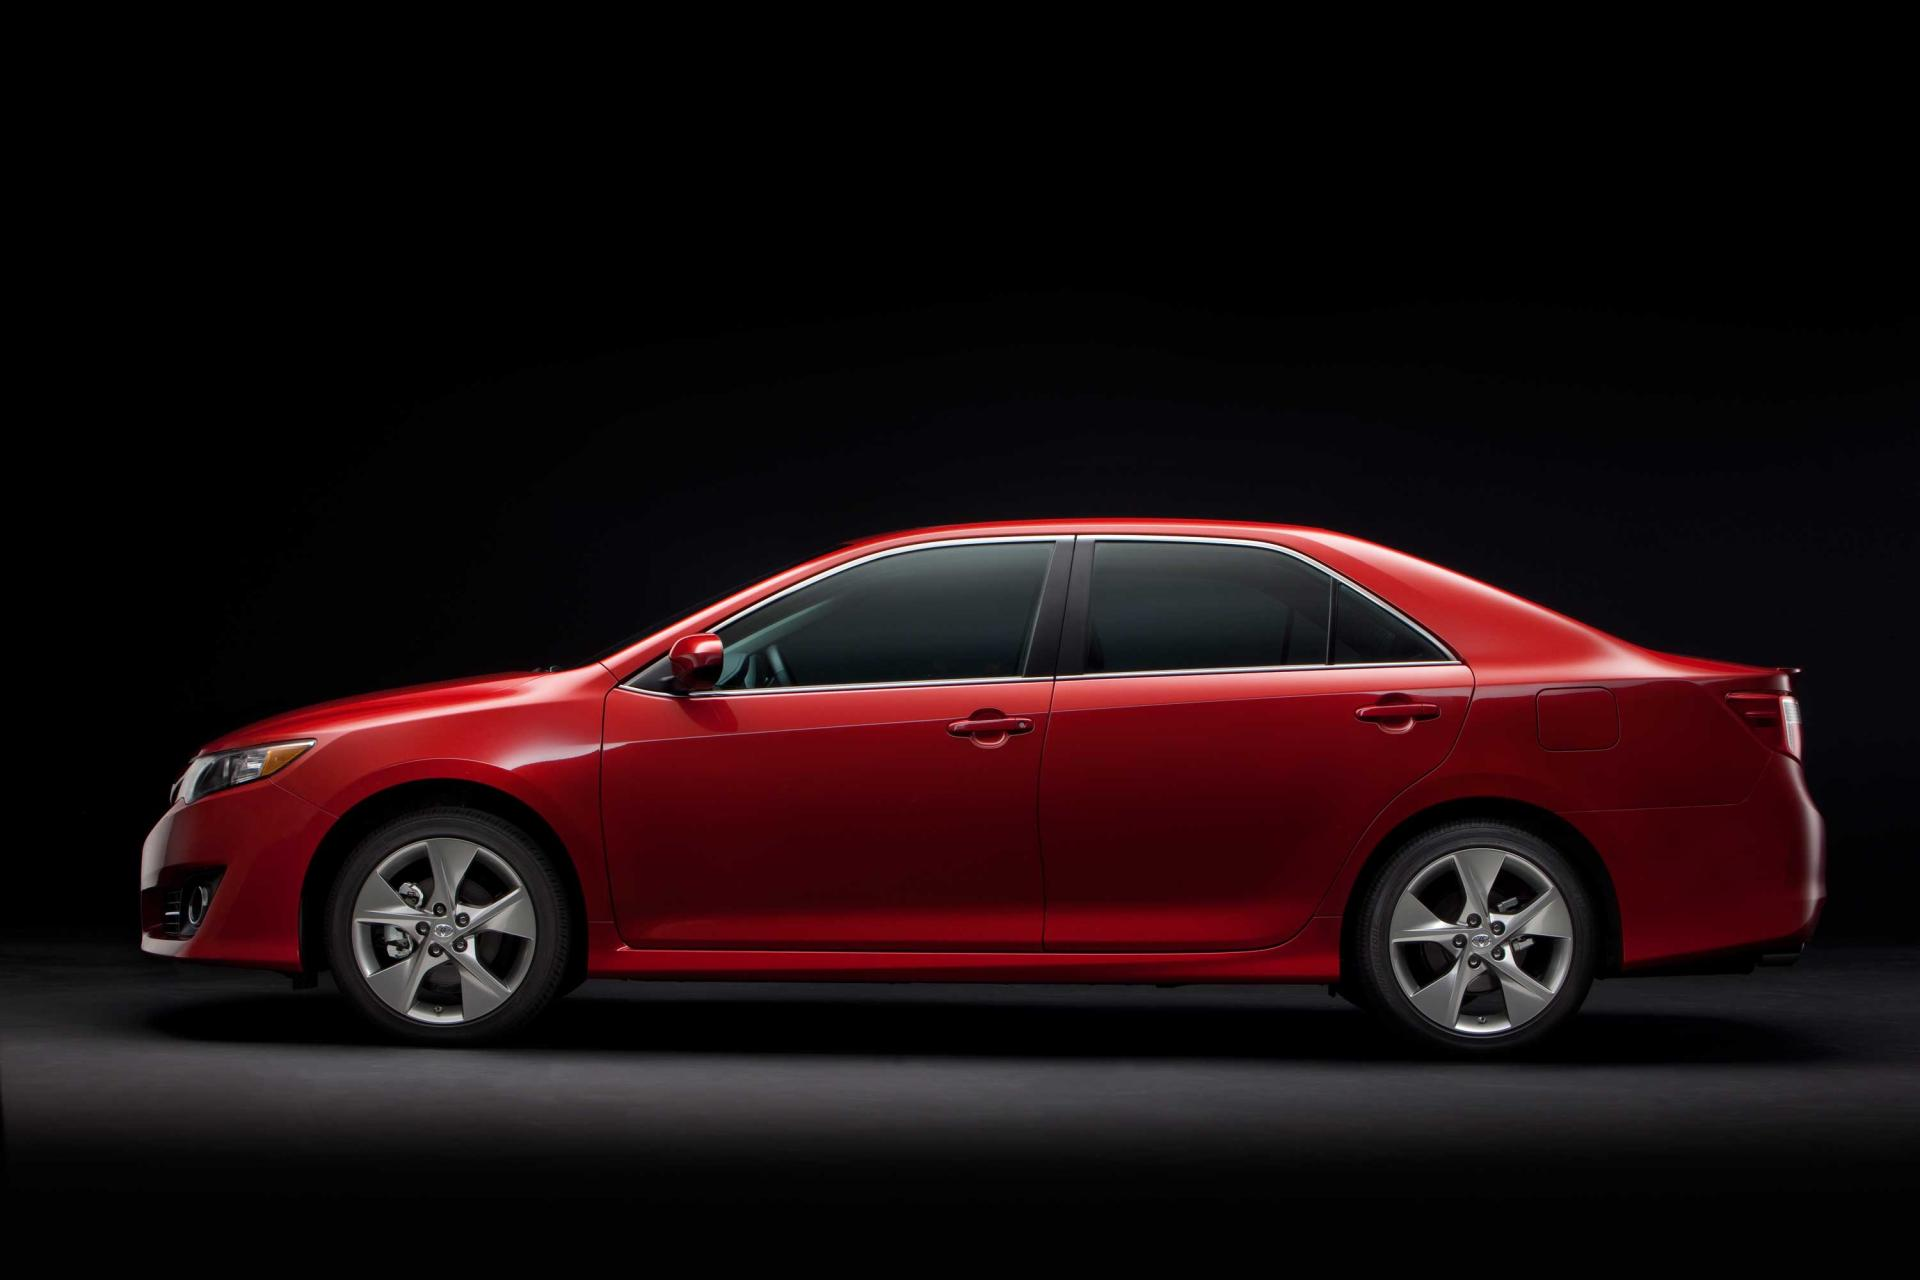 2012 toyota camry news and information - conceptcarz